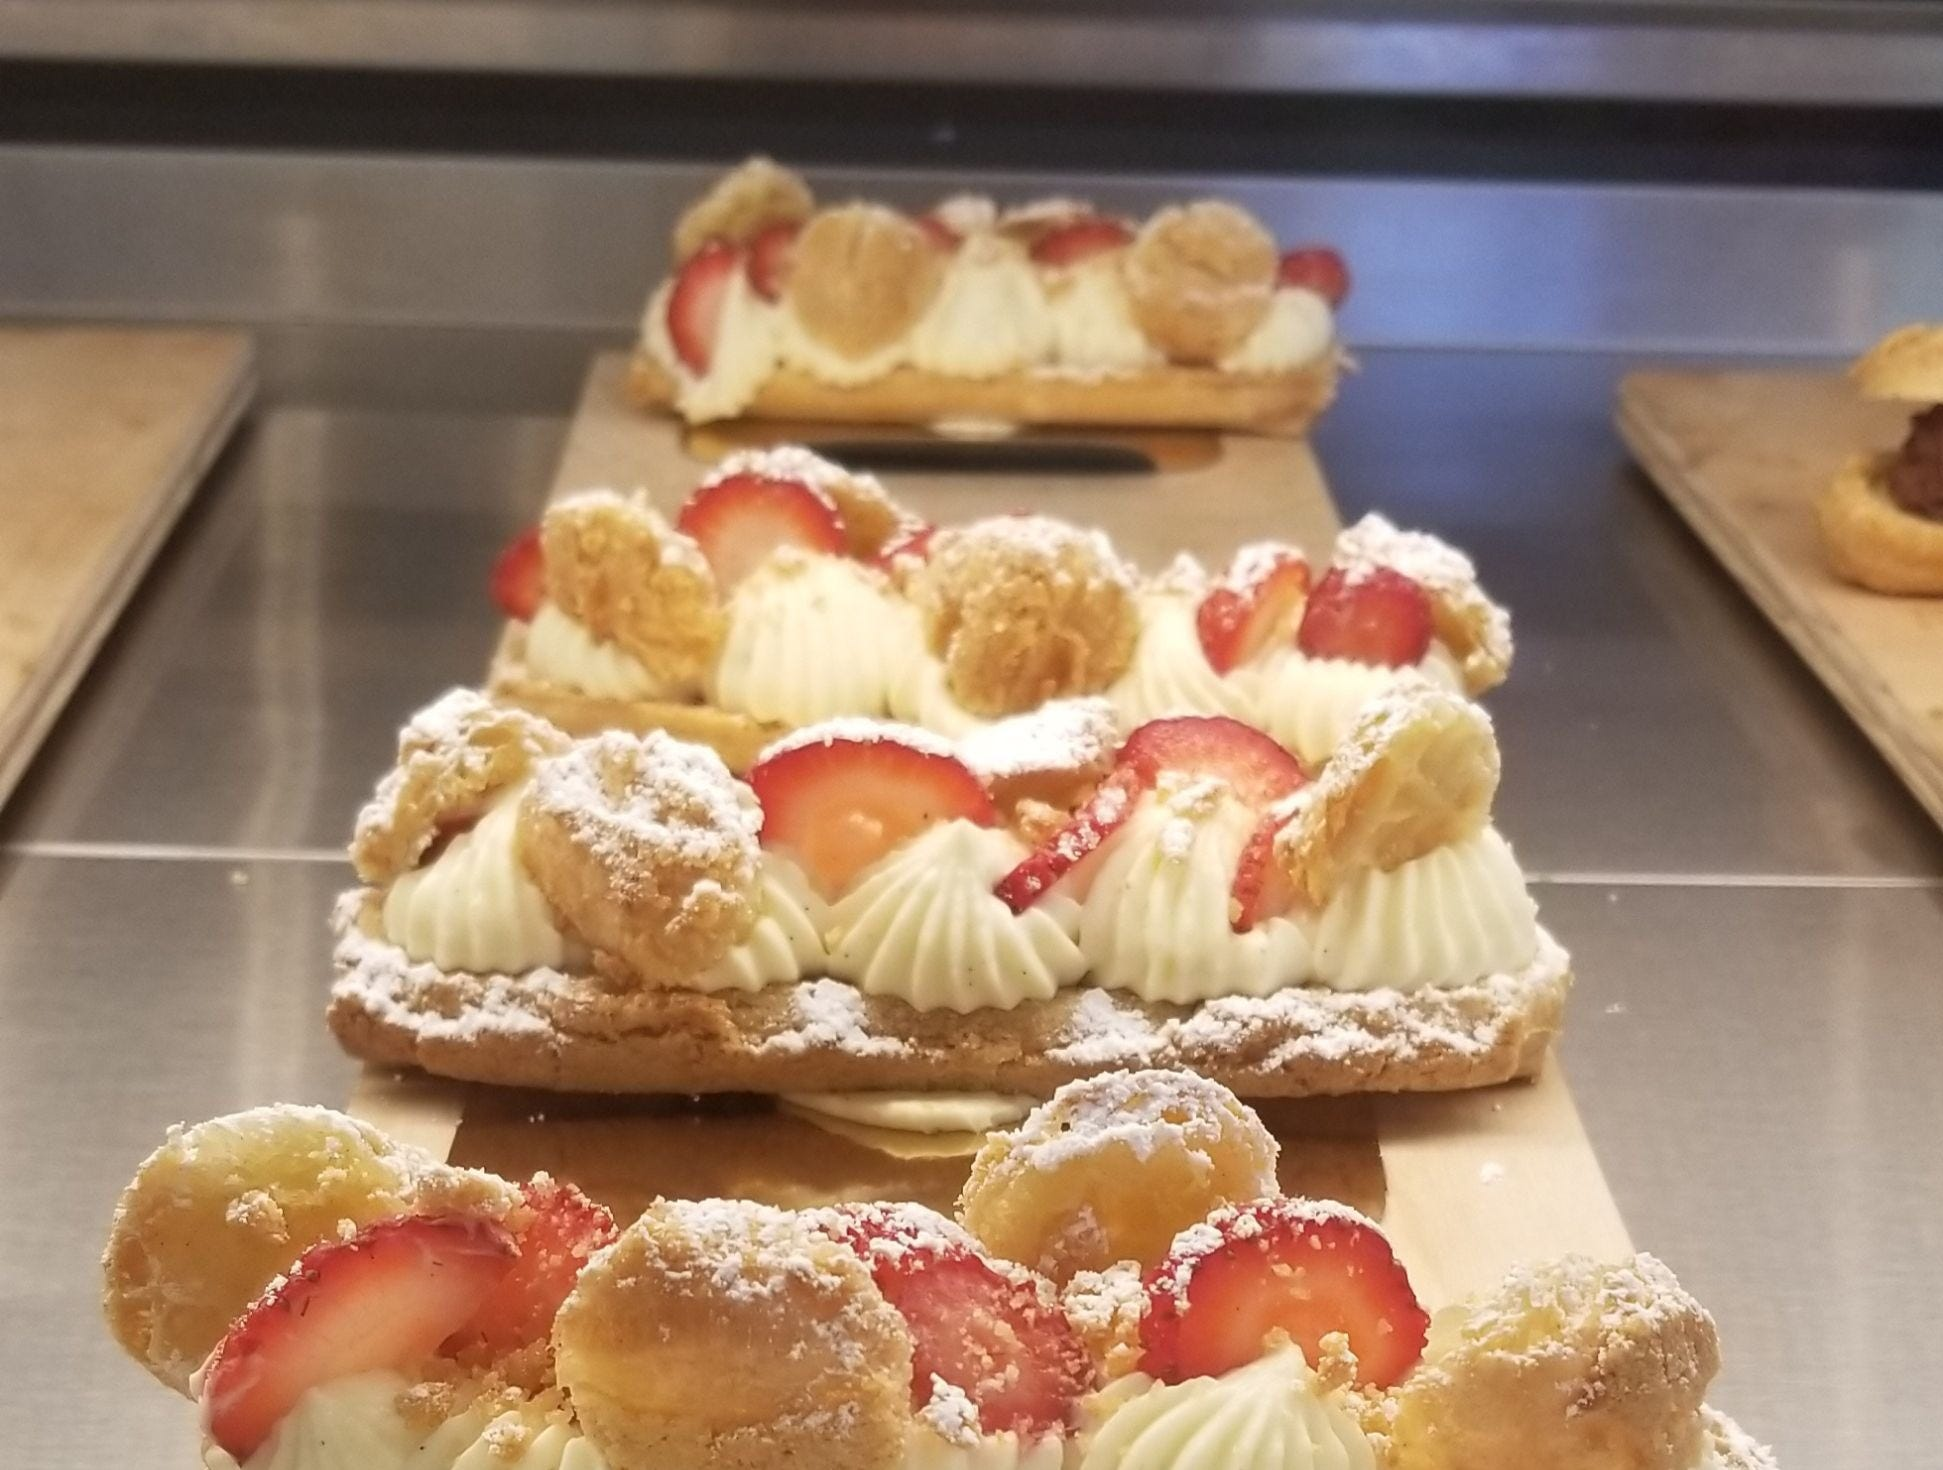 A strawberries-and-cream eclair from D'Andrews Bakery.